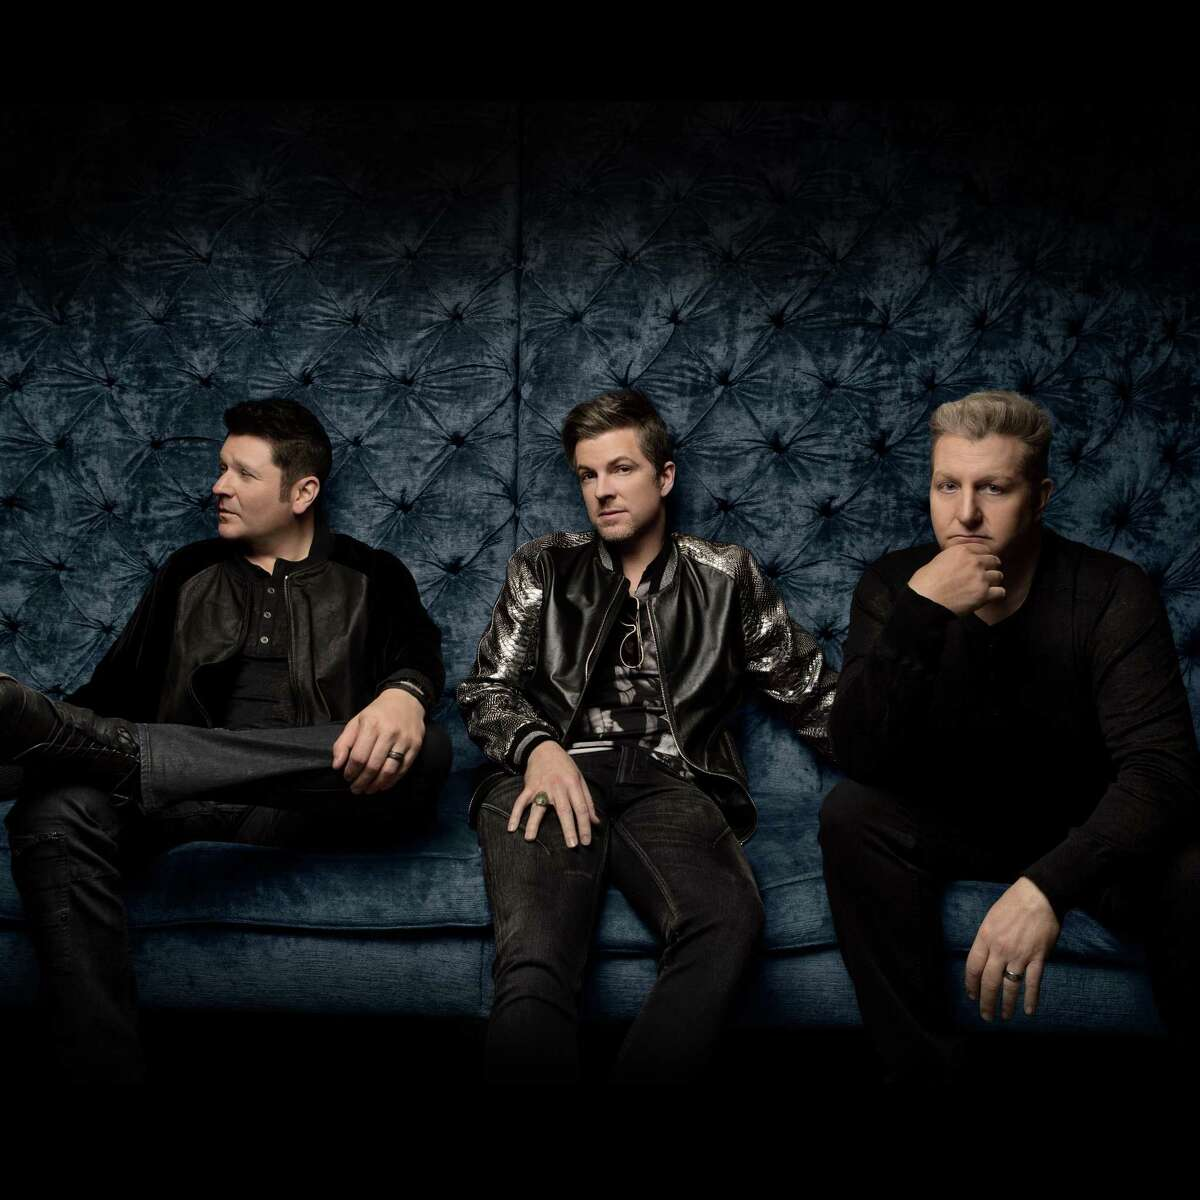 Rascal Flatts 7 p.m. Feb. 14 With 17 No. 1 hits, including